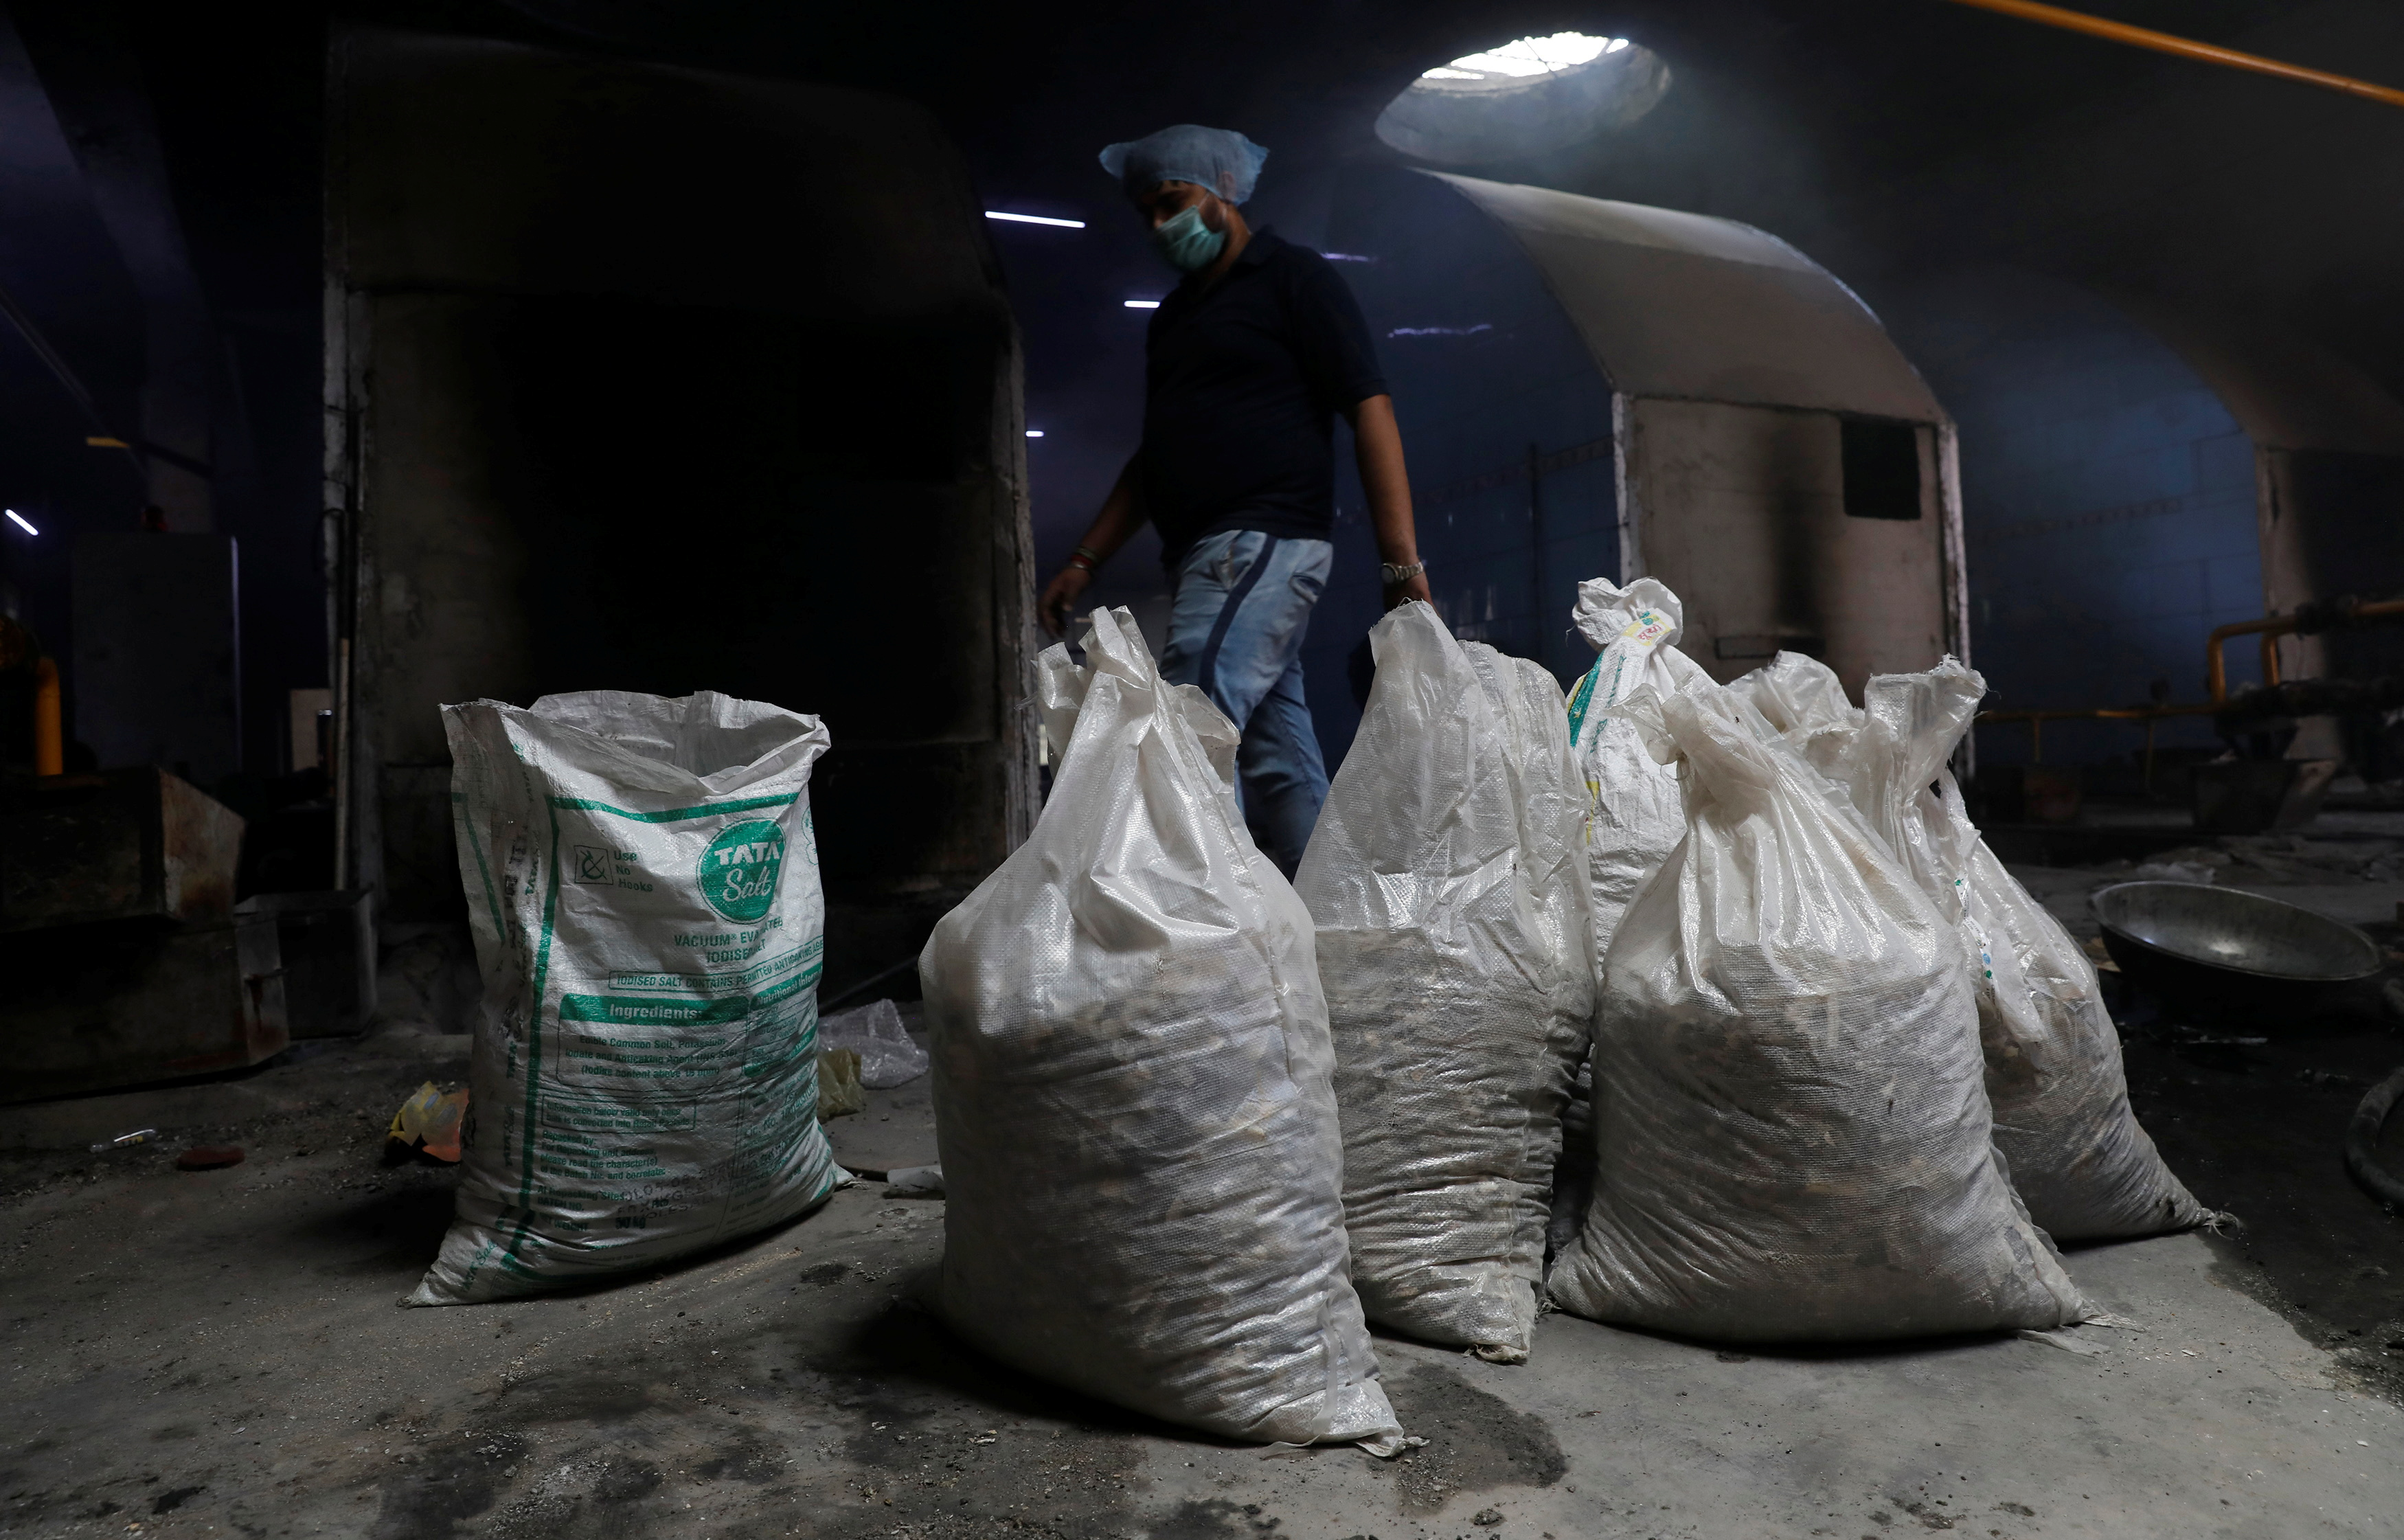 Bags containing unclaimed ashes of victims who died from the coronavirus disease (COVID-19), are seen at a crematorium in New Delhi, India, May 9, 2021. Picture taken May 9, 2021. REUTERS/Adnan Abidi